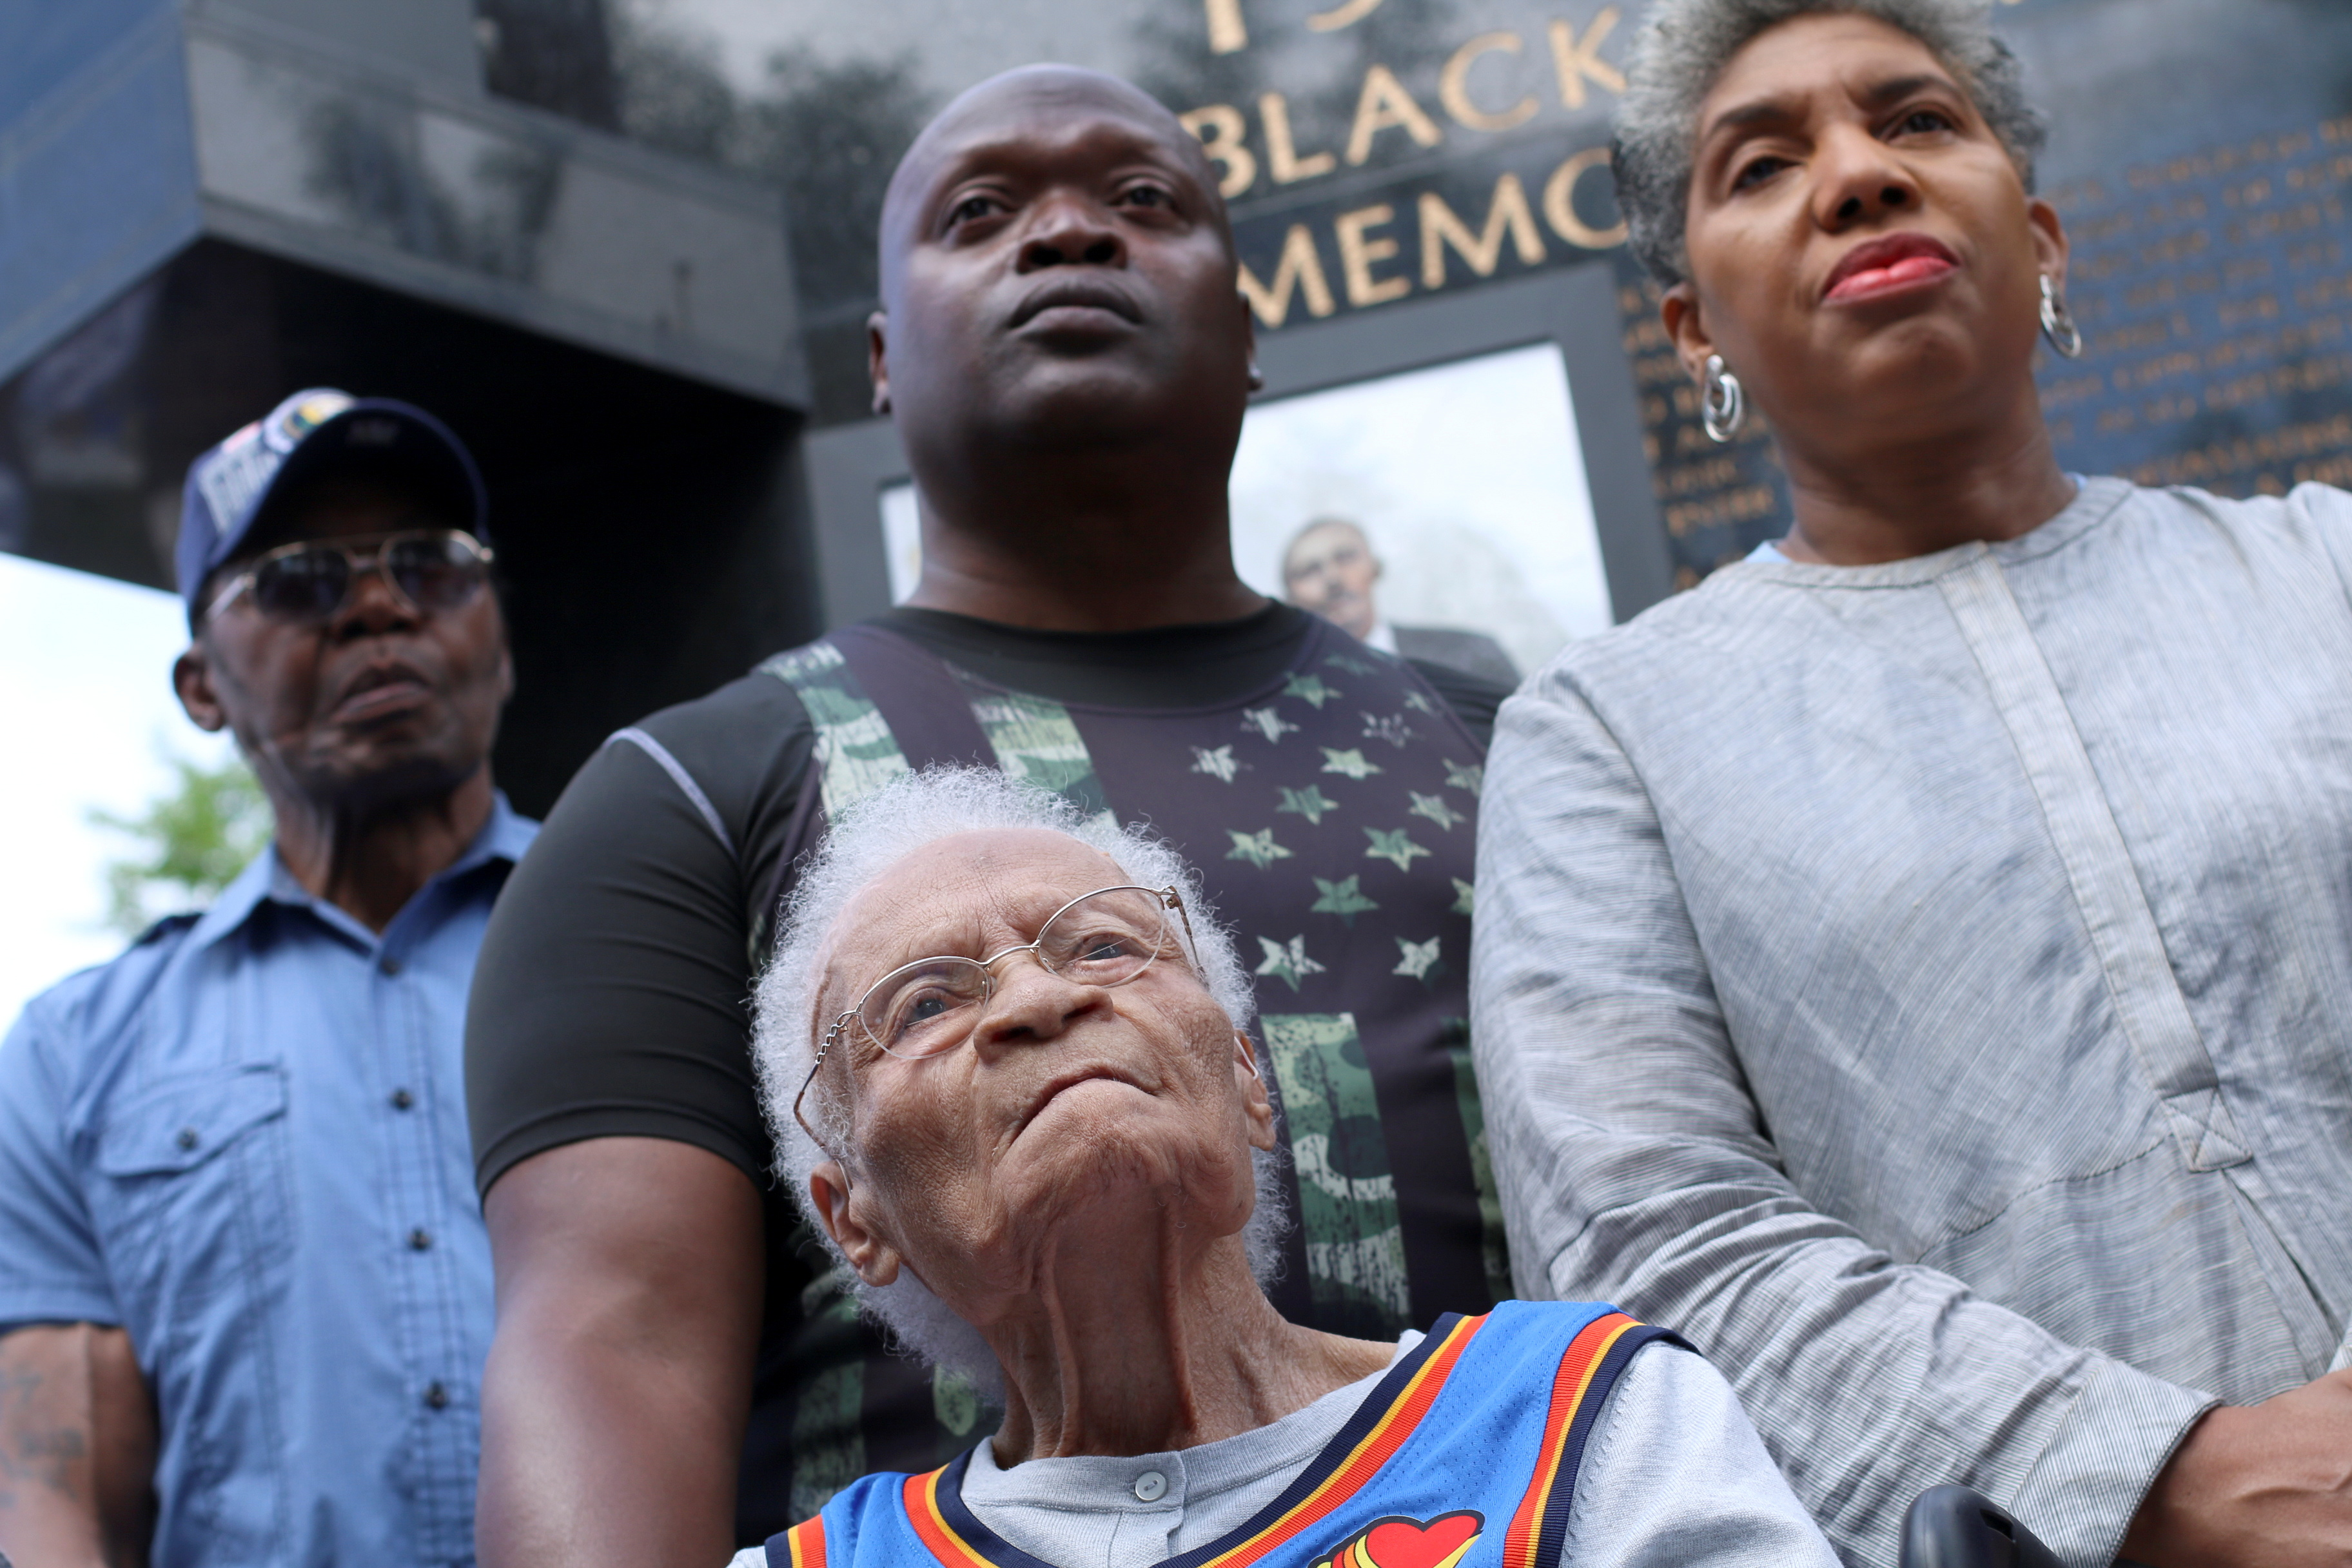 The oldest known living survivor of the Tulsa Race Massacre, Viola Fletcher, 107, attends the Black Wall Street Legacy Festival 2021 in Tulsa, Oklahoma, U.S., May 28, 2021. REUTERS/Polly Irungu